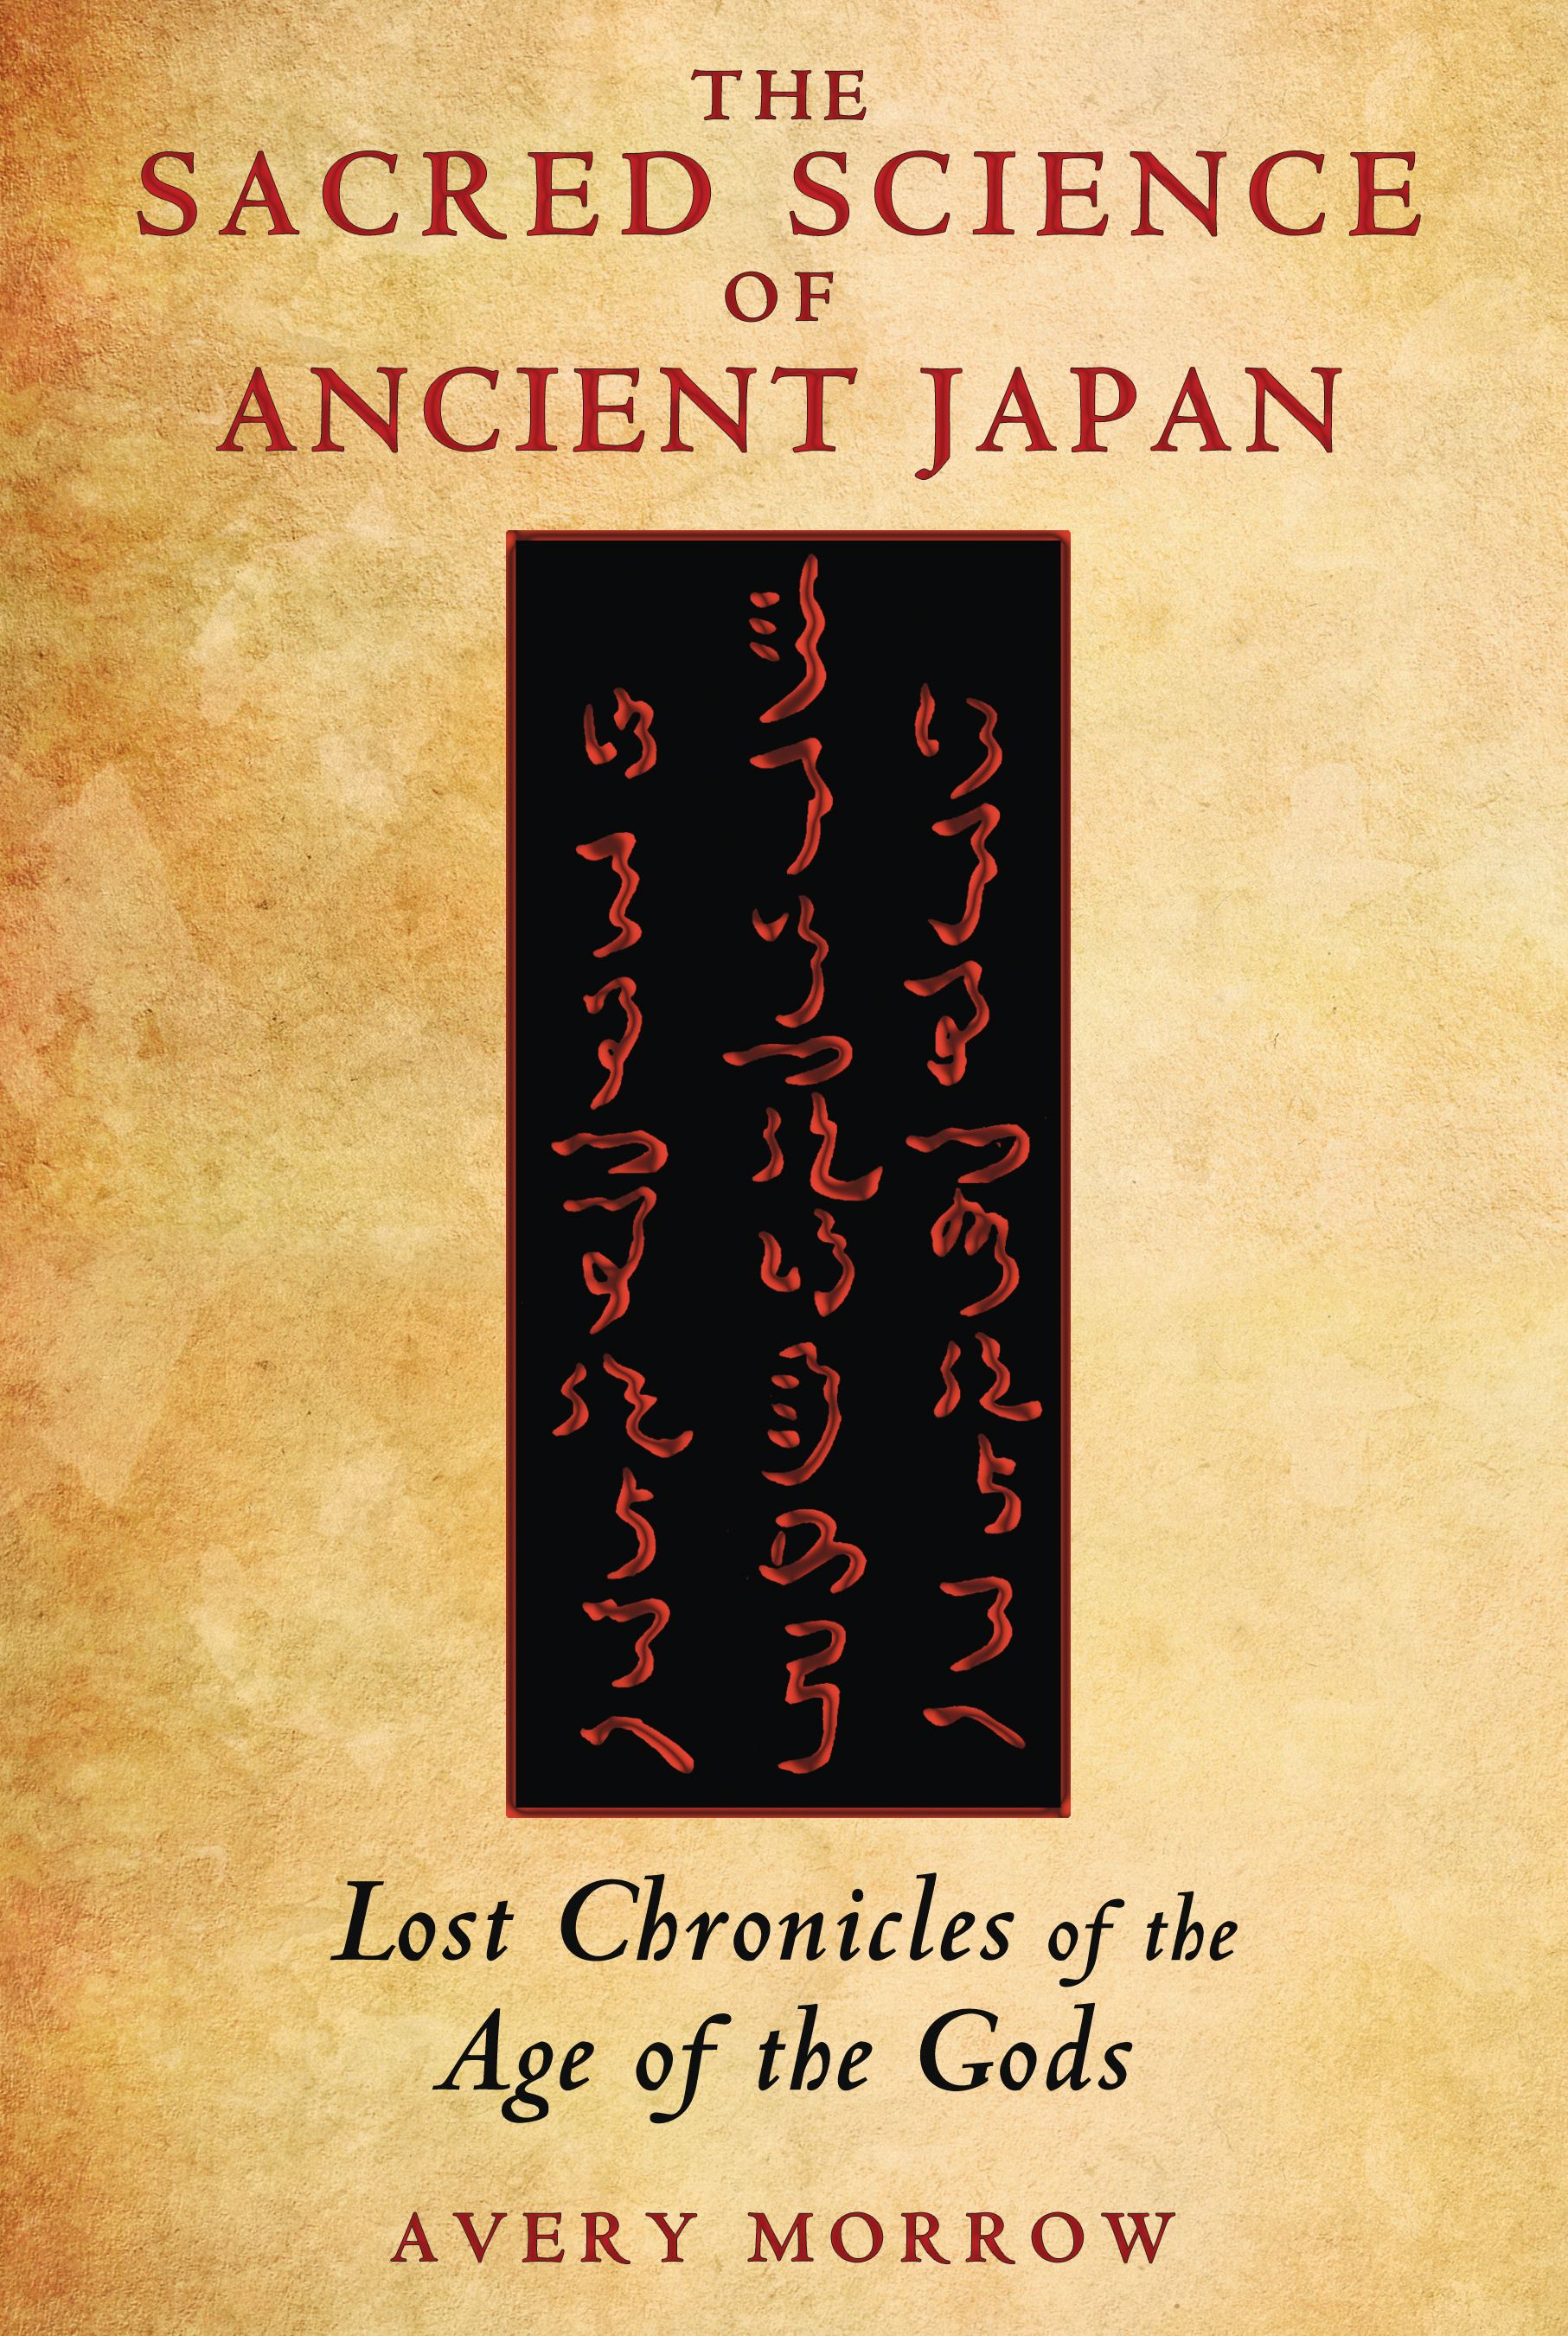 The-sacred-science-of-ancient-japan-9781591431701_hr